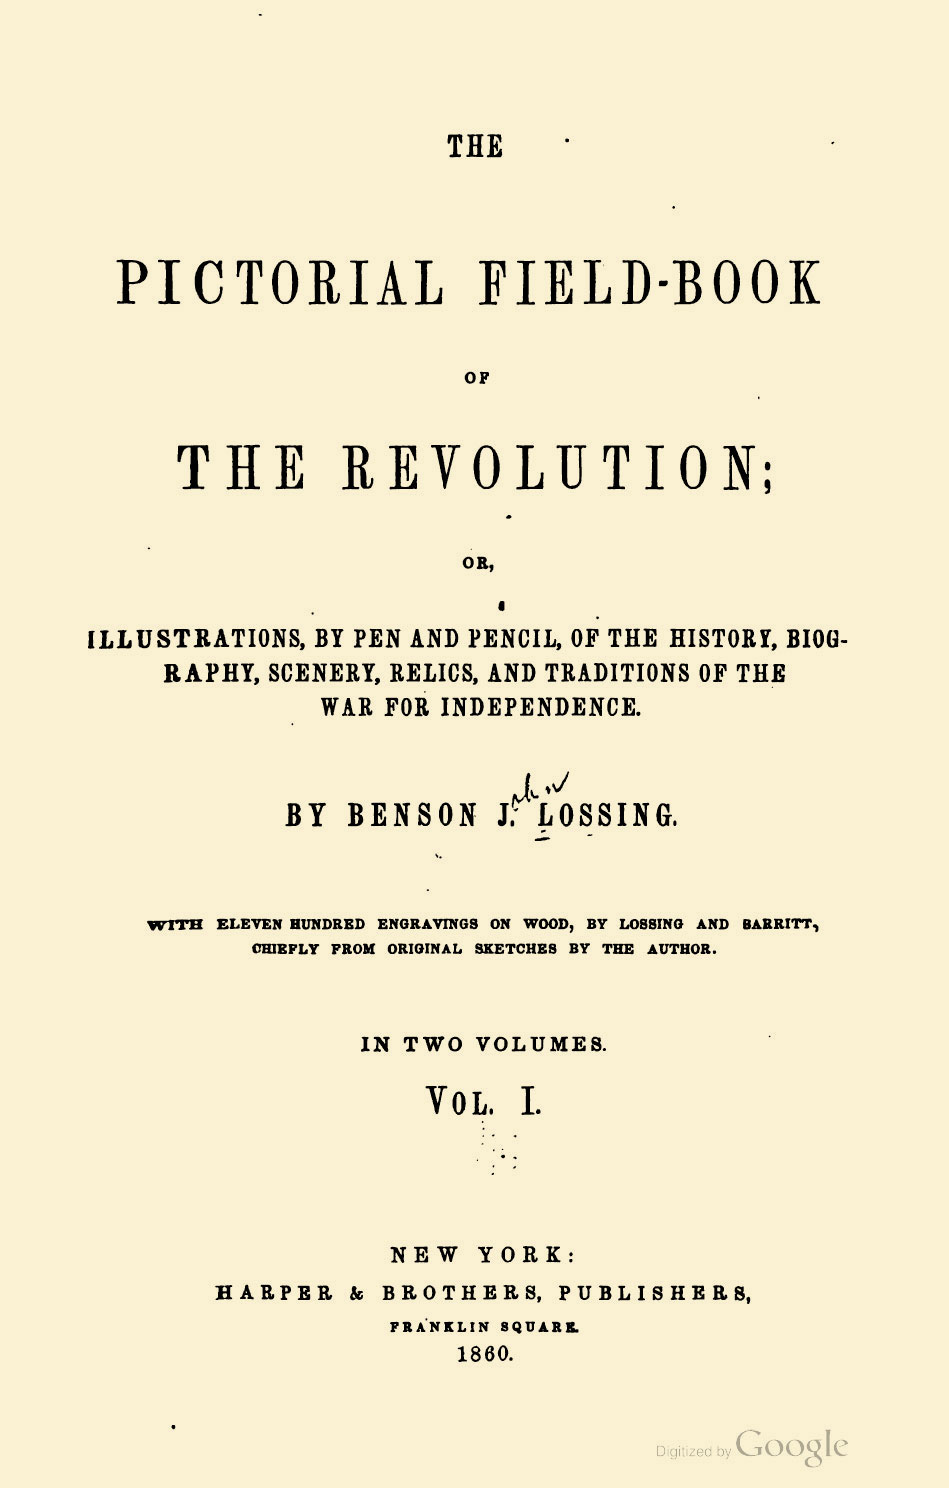 Lossing---The-Pictorial-Field-Book-of-the-Revolution-16.jpg